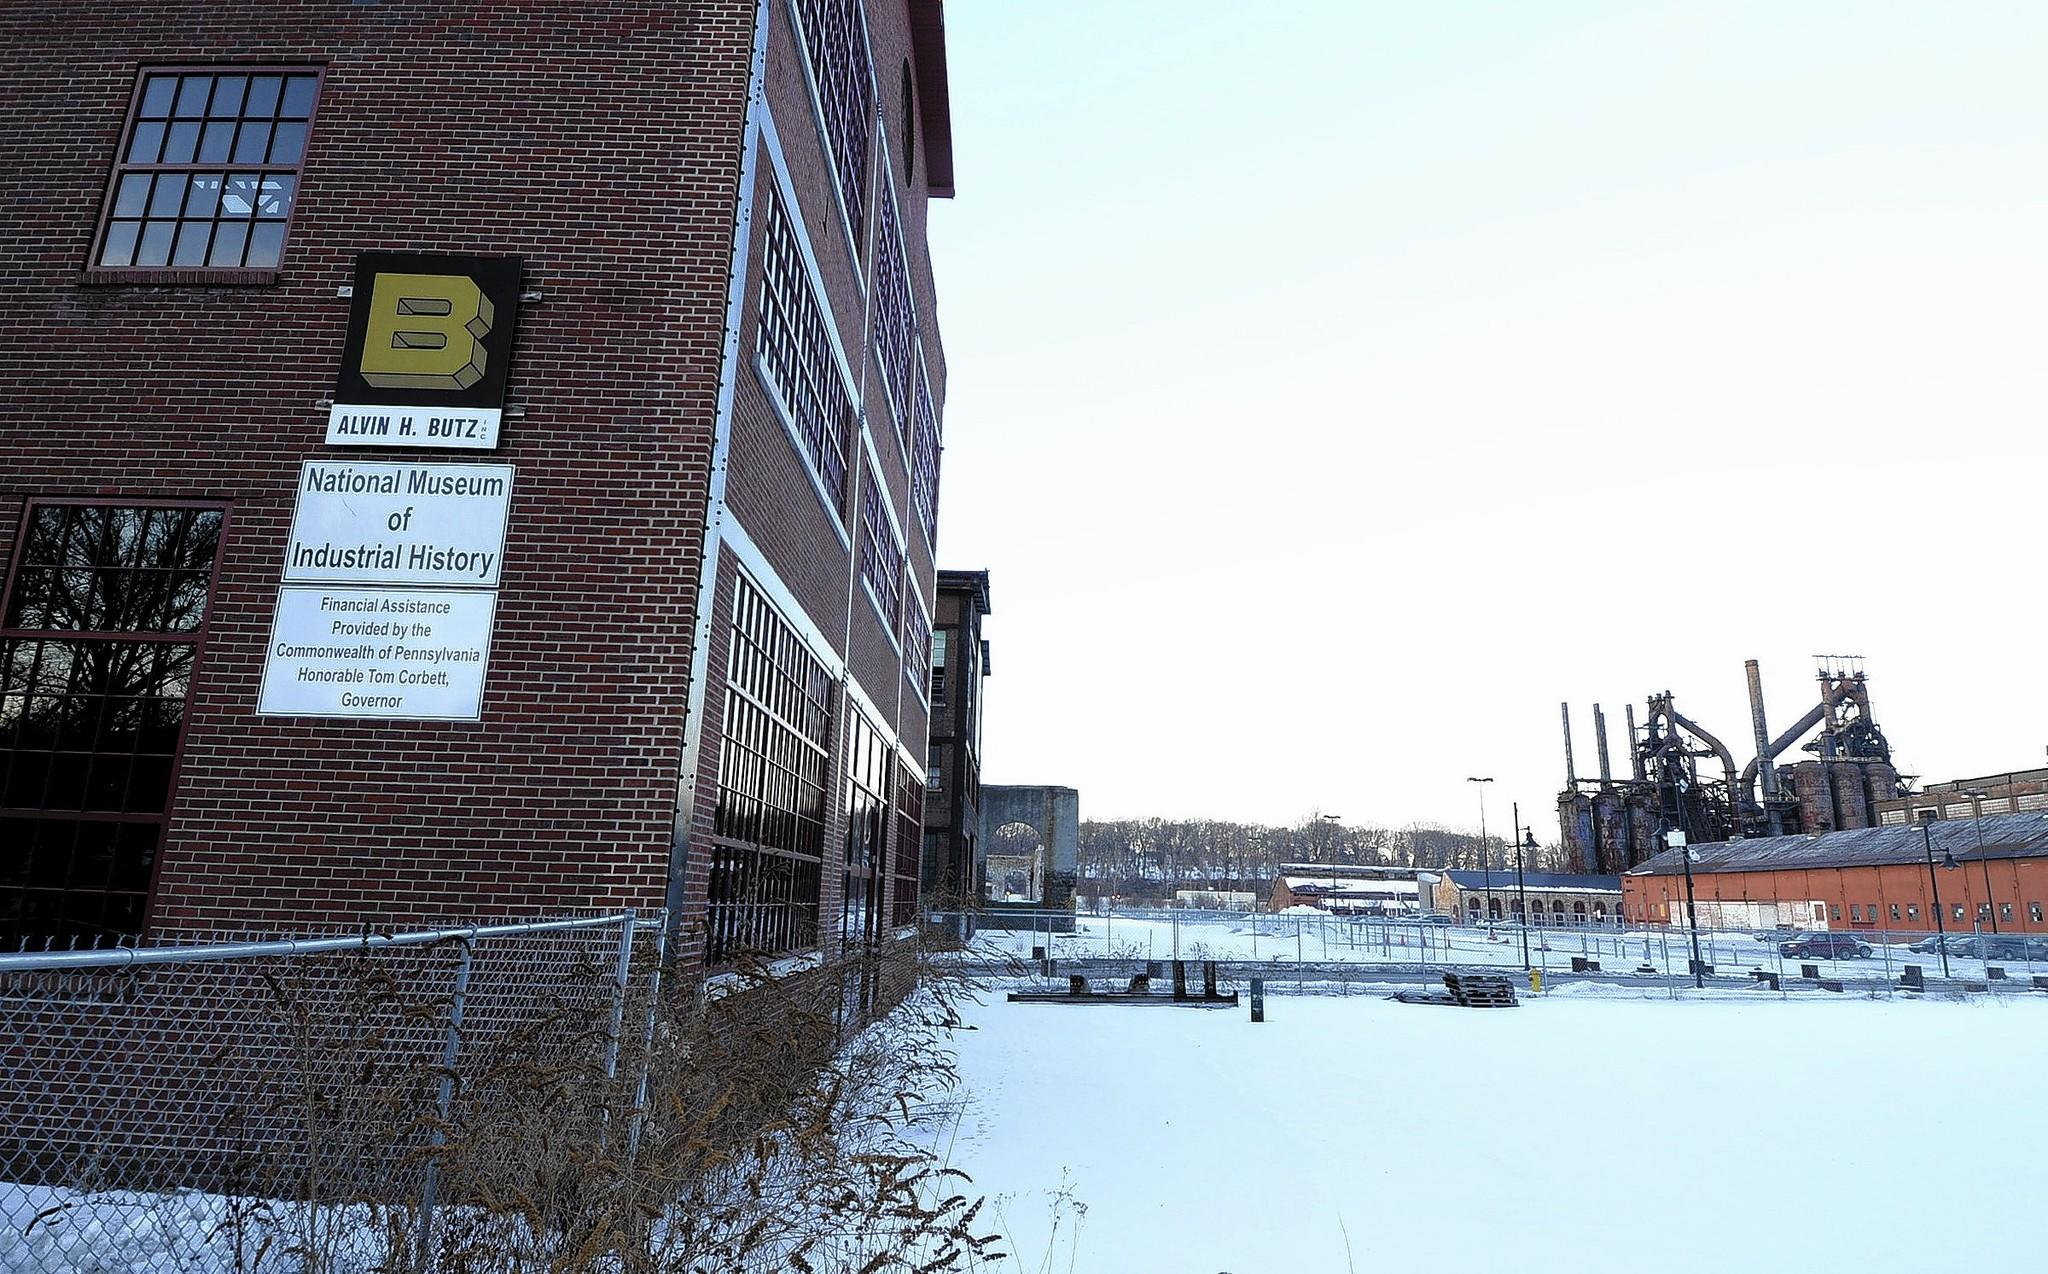 A Northampton County grand jury report concluded that the National Museum of Industrial History in Bethlehem was mismanaged for years. The museum's vacant building (left) is seen with old Bethlehem Steel buildings in the background.